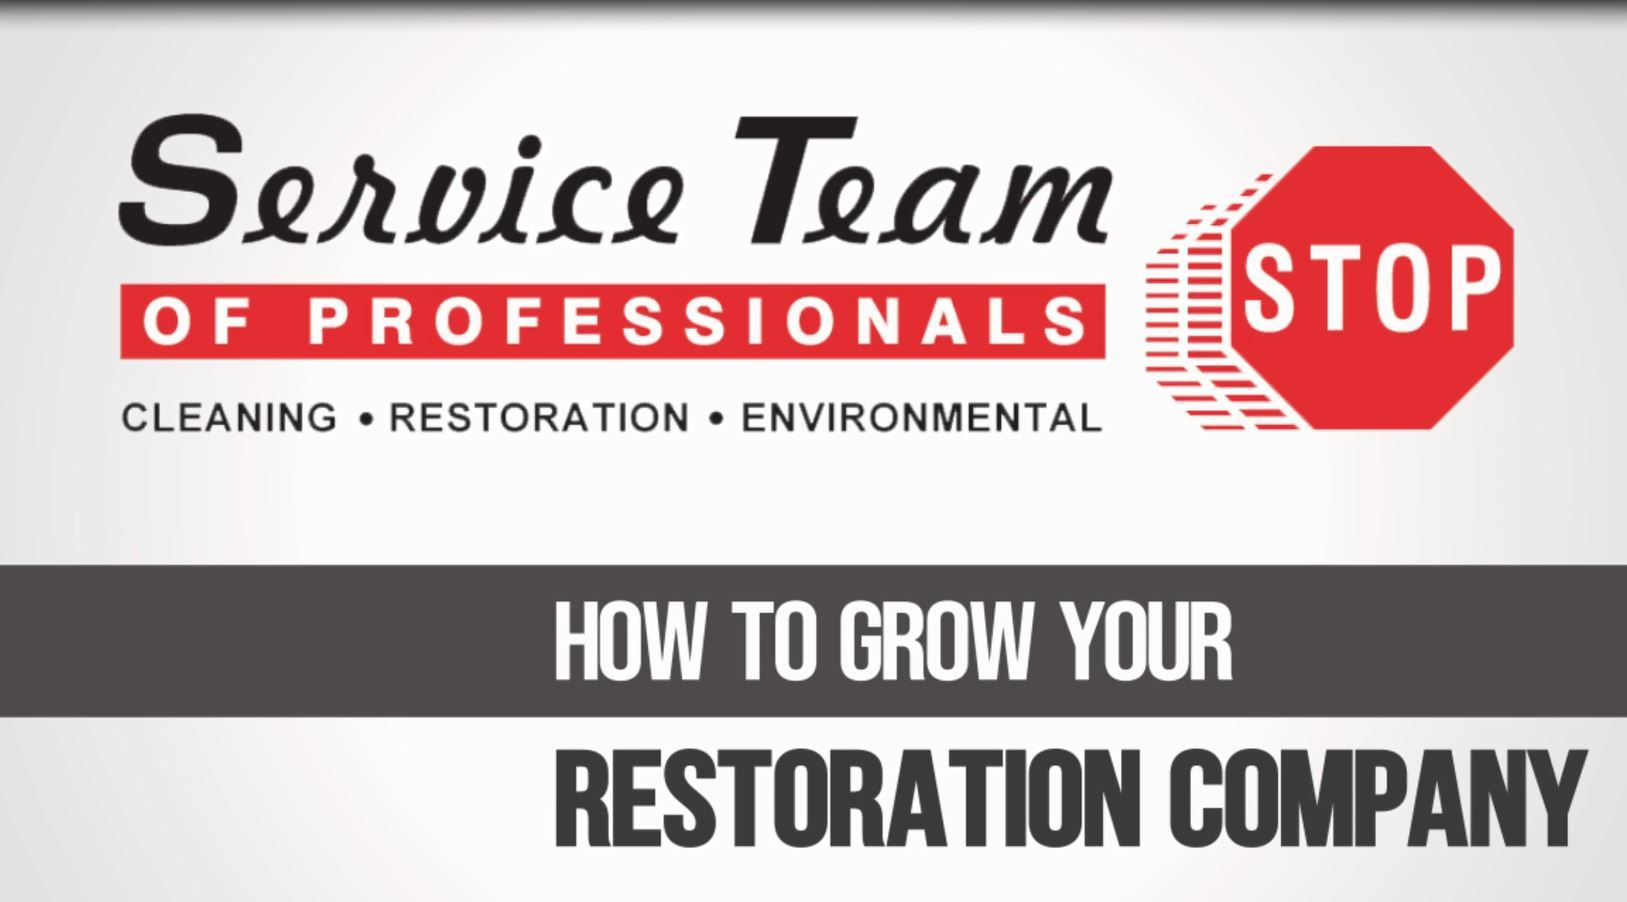 How to Grow Your Restoration Company